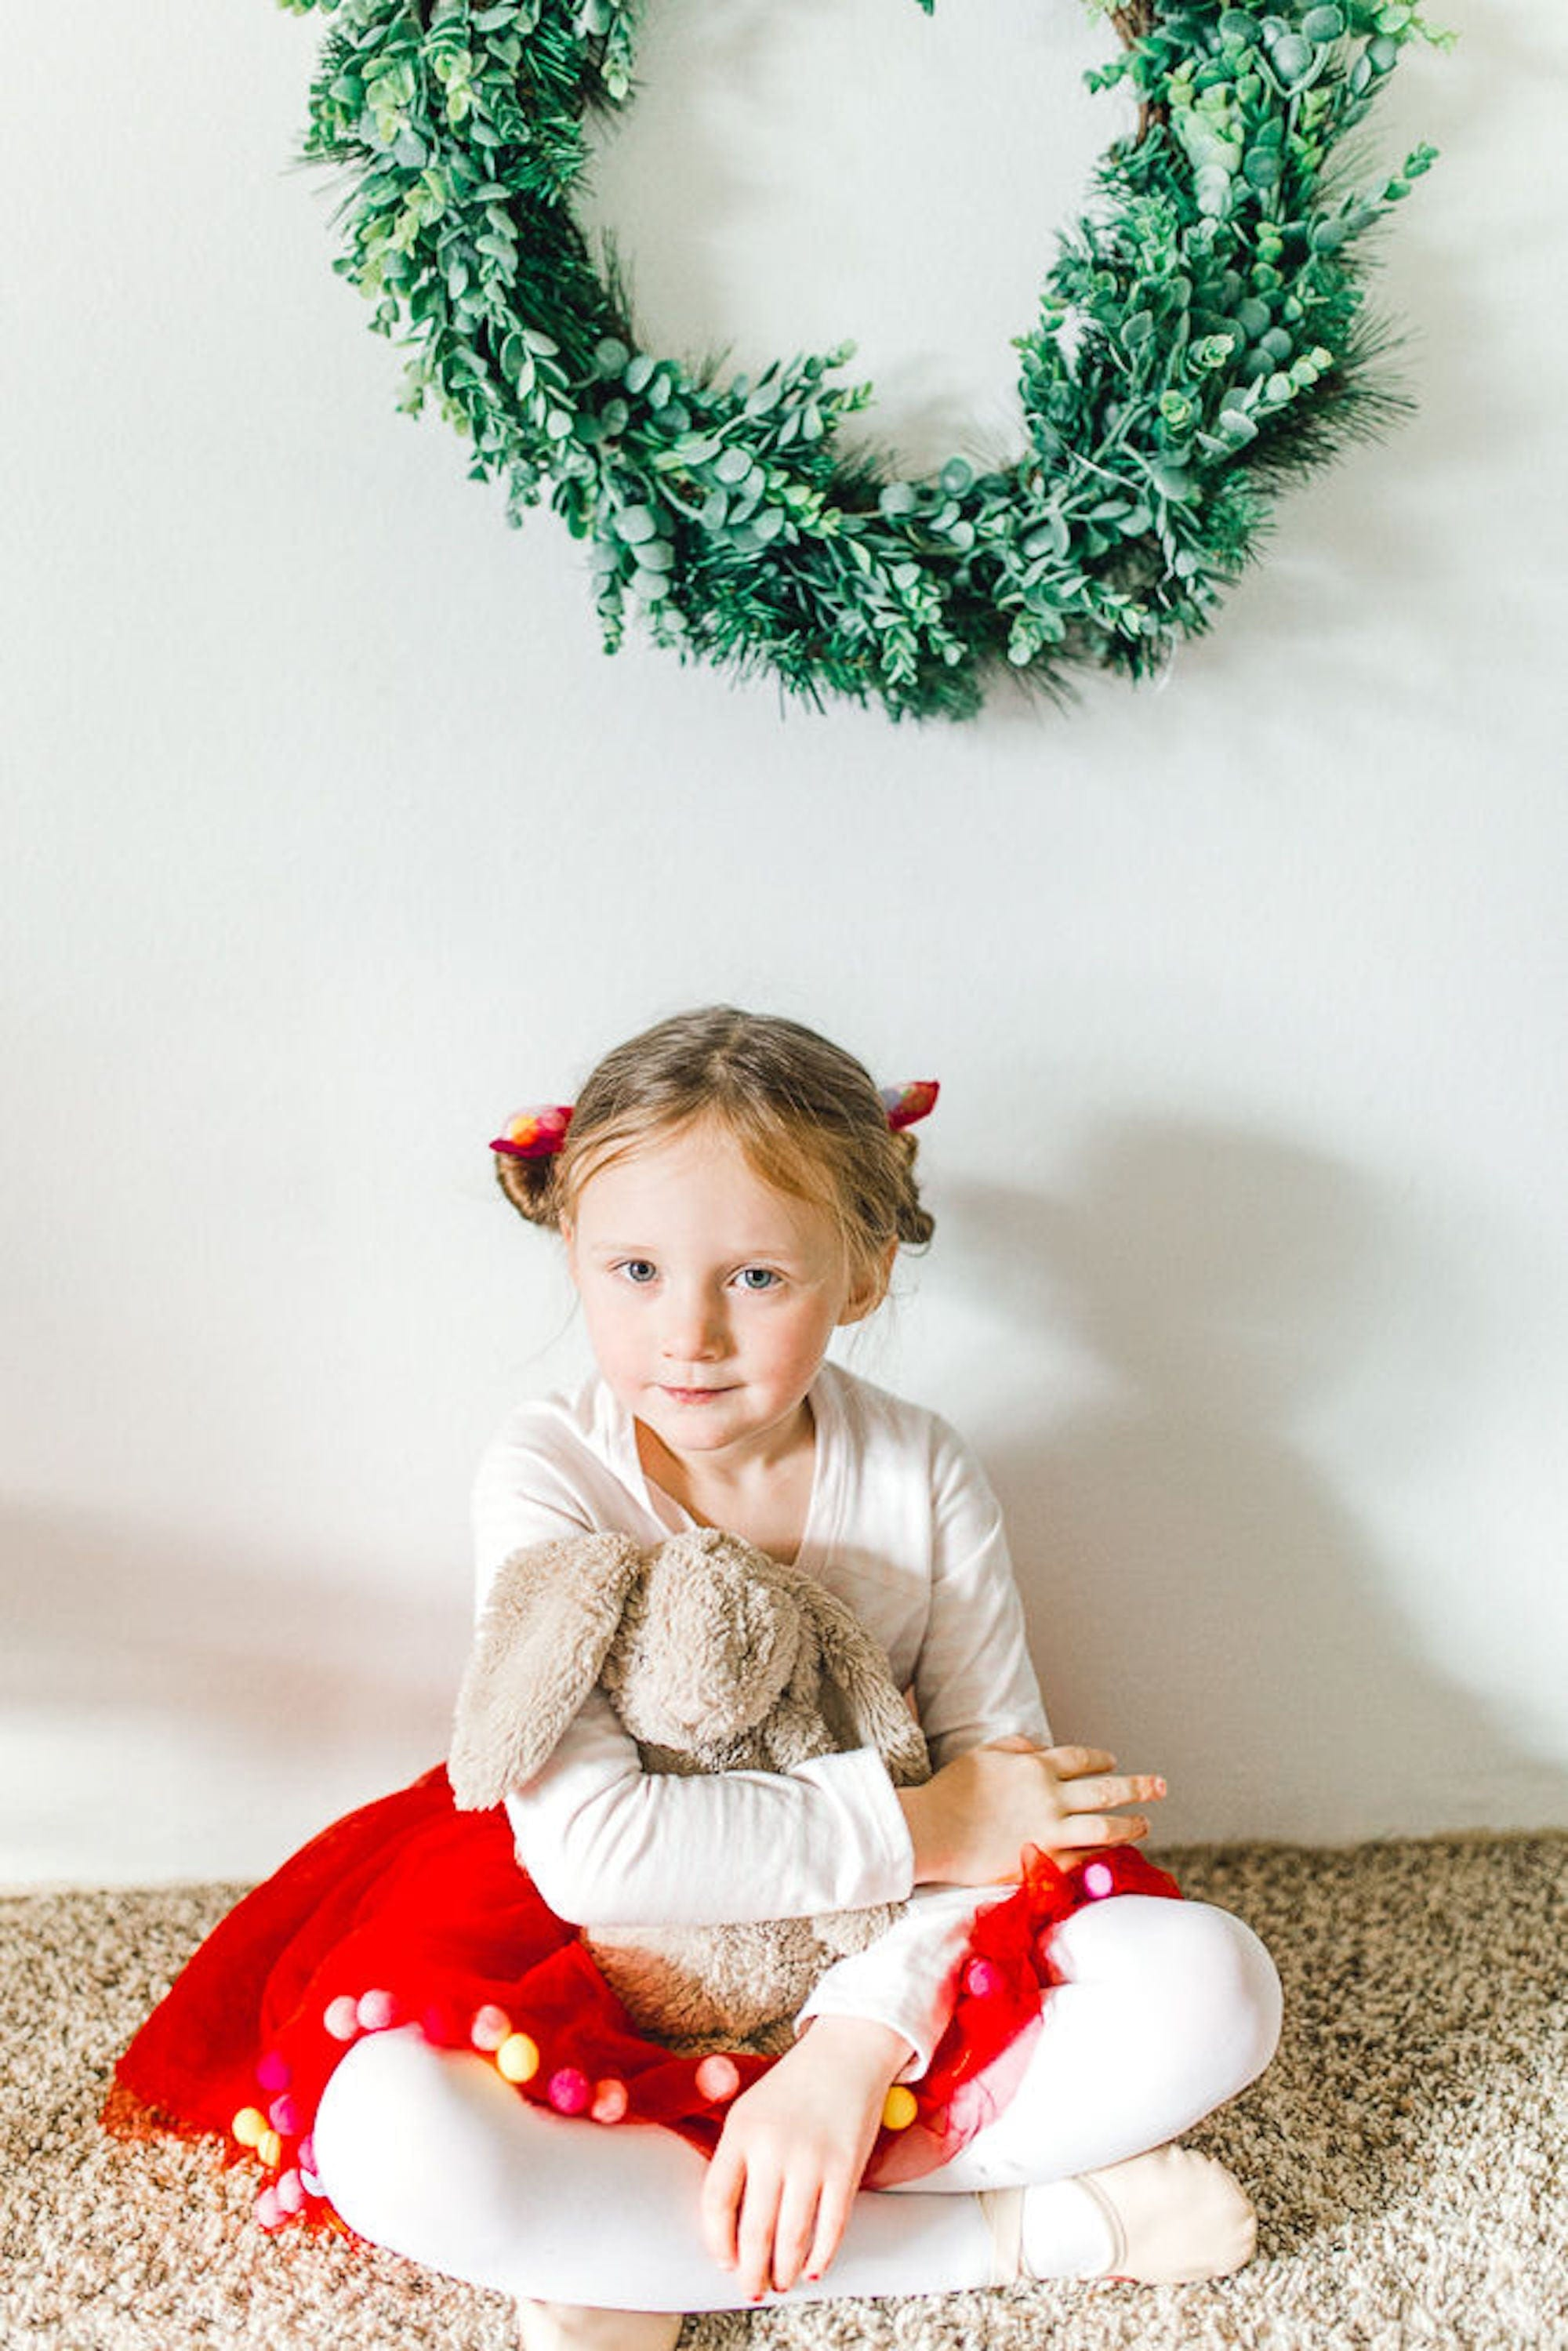 red pom pom tutu, christmas tutu, valentines day tutu for kids, baby red tutu, toddler baby tutu, kids red tutu, tutu, tootoo, red bow ponytail holder, red bows for kids, pom pom bows, pom poms, tutu joli, fun tutu, party tutu, photoshoot tutu, rainbow tutu, xmas tutu, red bow hair tie for kids